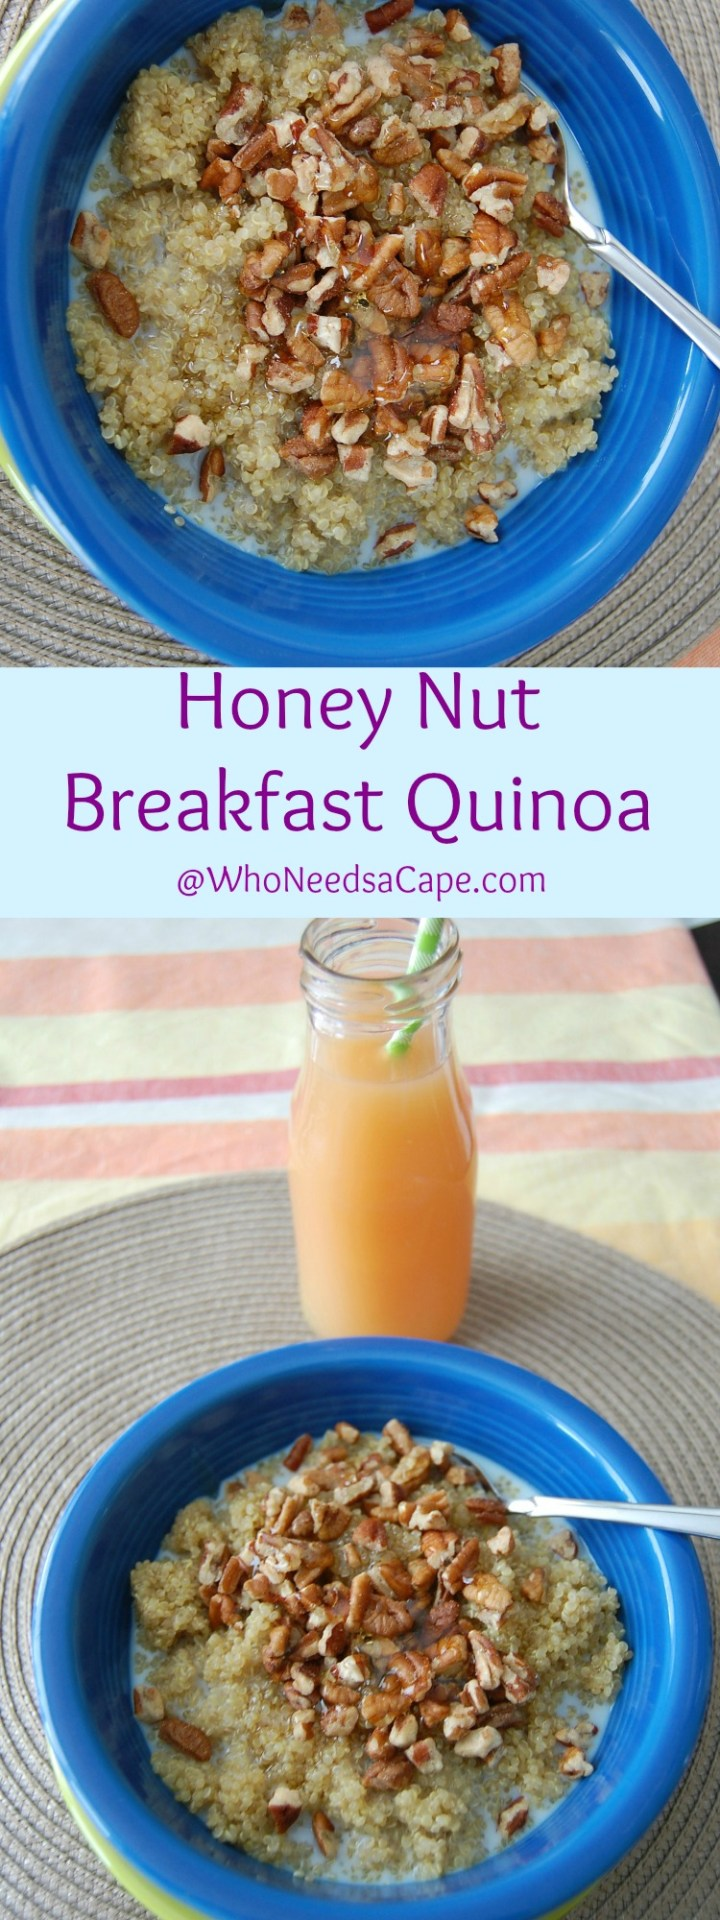 Honey Nut Breakfast Quinoa is a nutritious and delicious way to start your day!